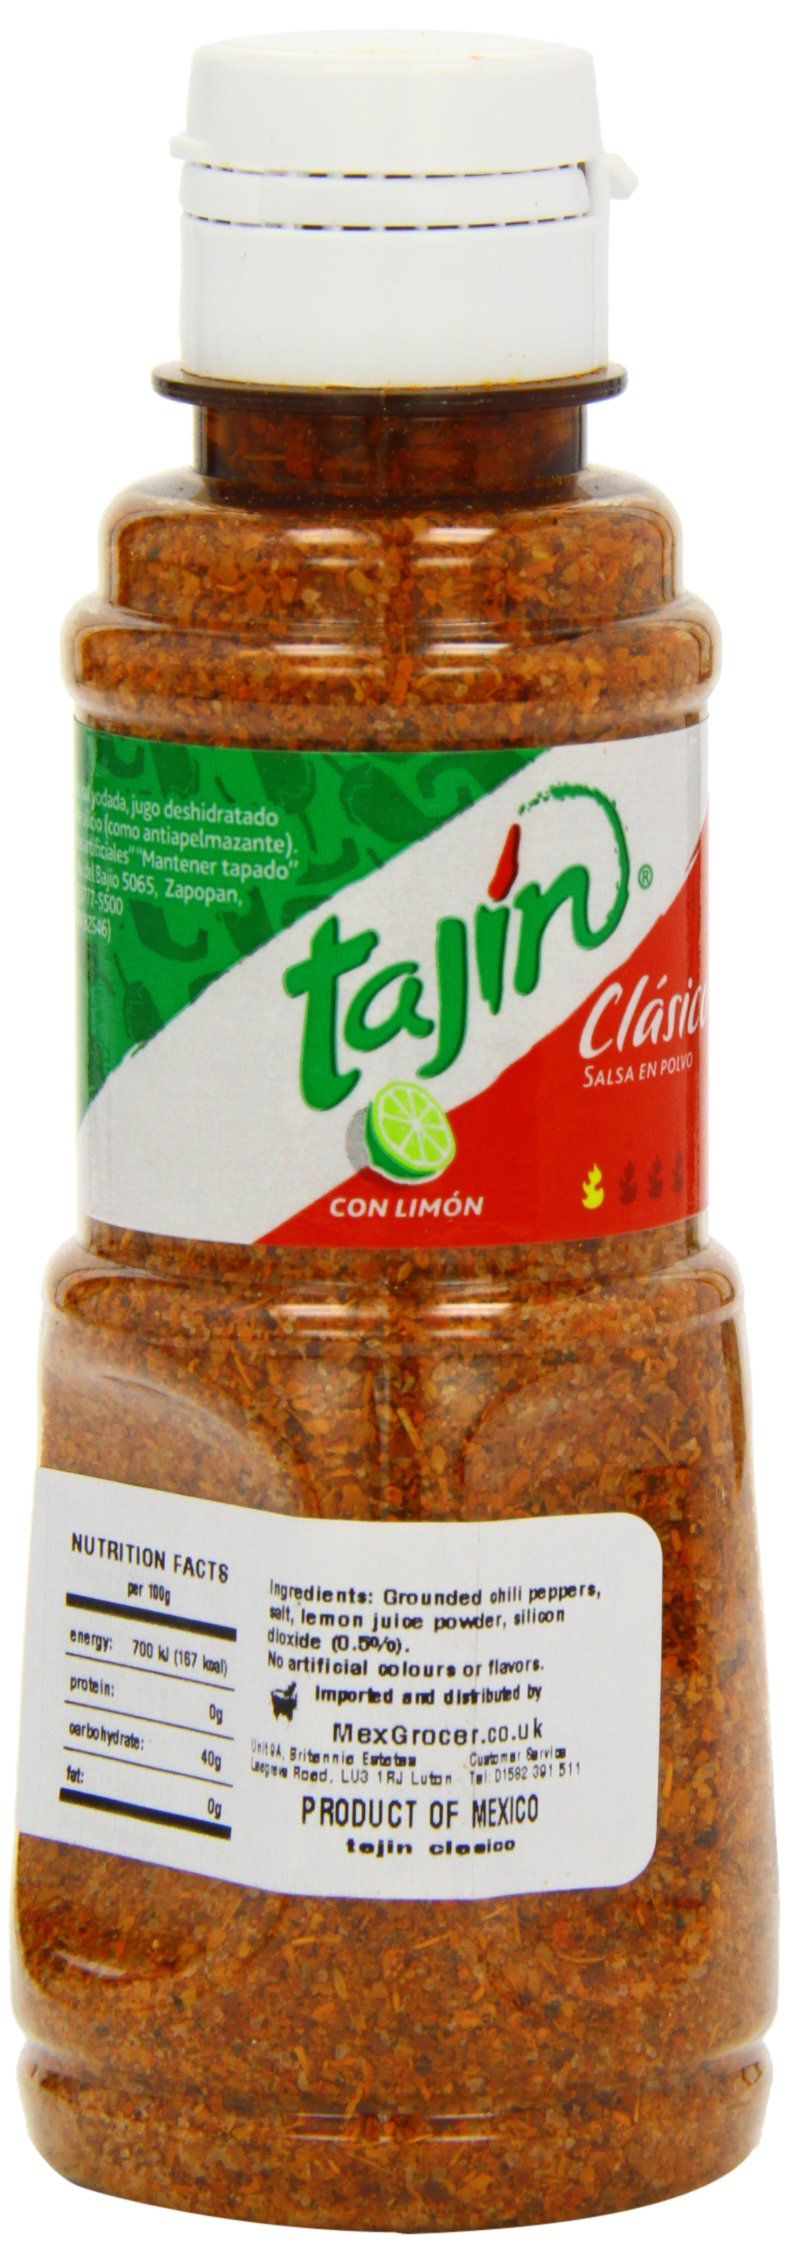 Tajin Clasico Seasoning with Lime, 5-Ounce (Pack of 8)